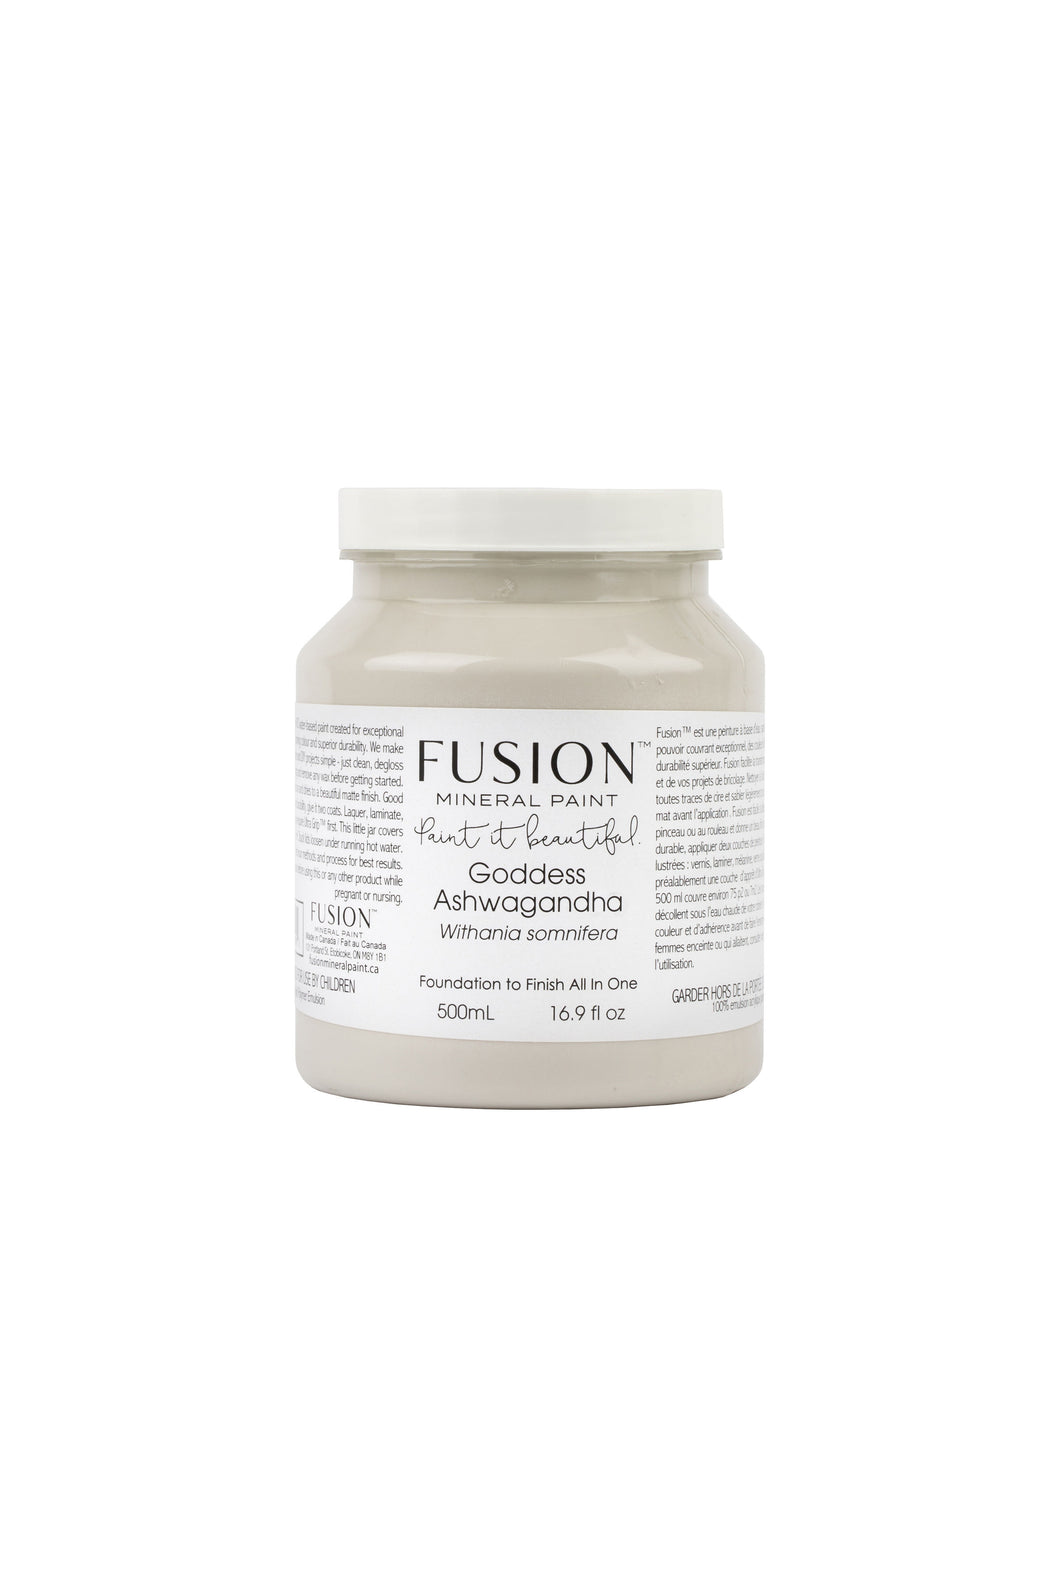 Fusion mineral paint | Goddess Ashwagandha | 500ml | Colour Me KT